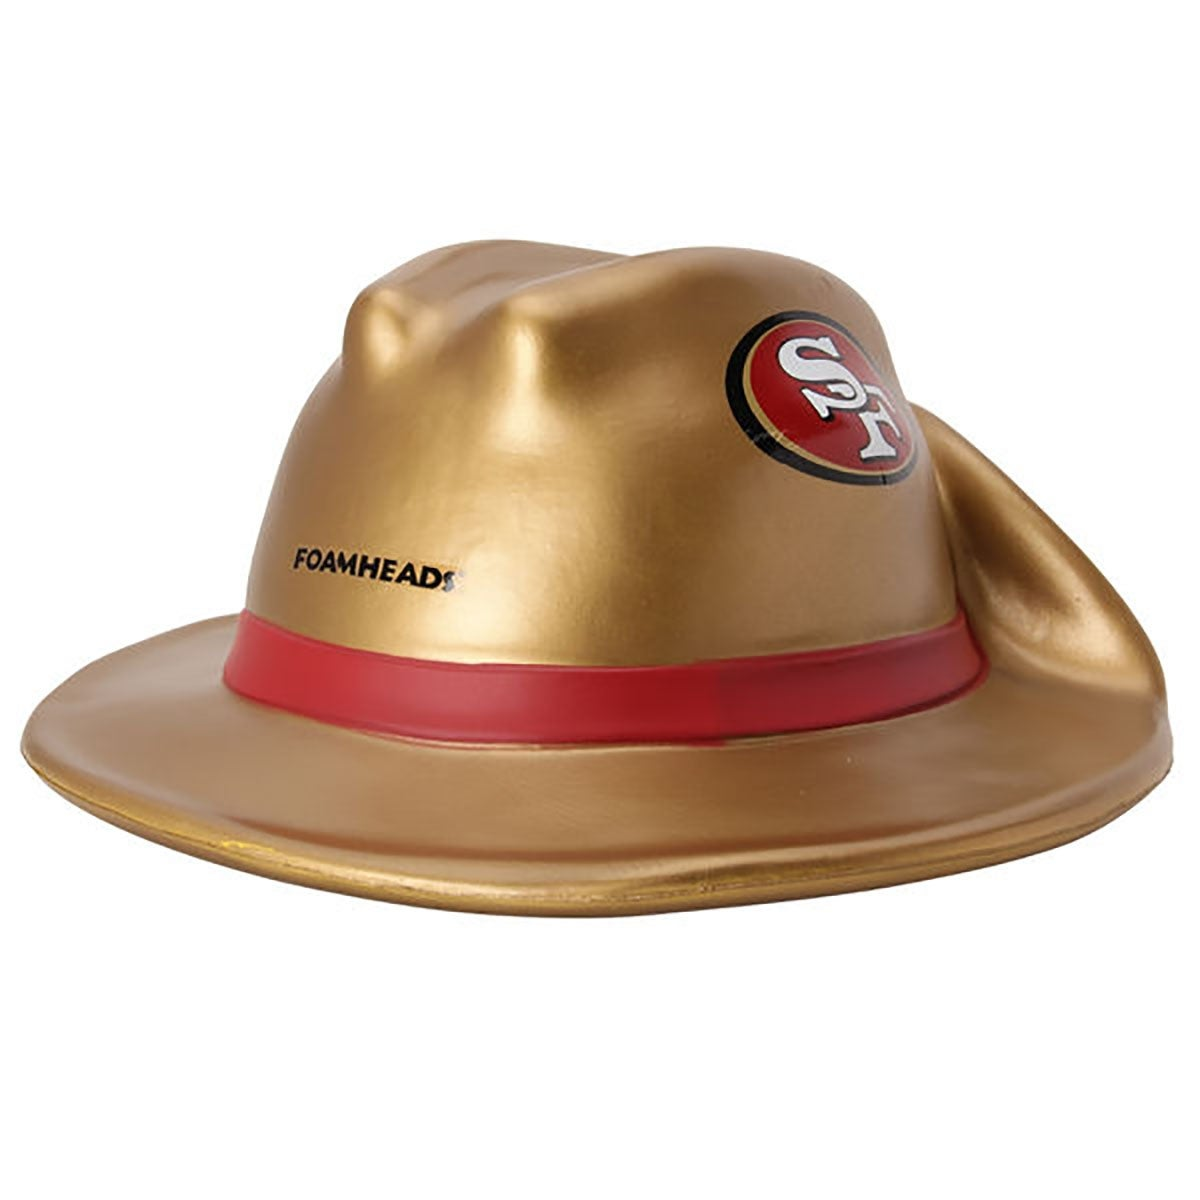 Shop NFL Team Mascot Foamhead Hat  San Francisco 49ers Prospector Hat -  Multi - Free Shipping On Orders Over  45 - Overstock - 19428037 81e0f3c0bf5